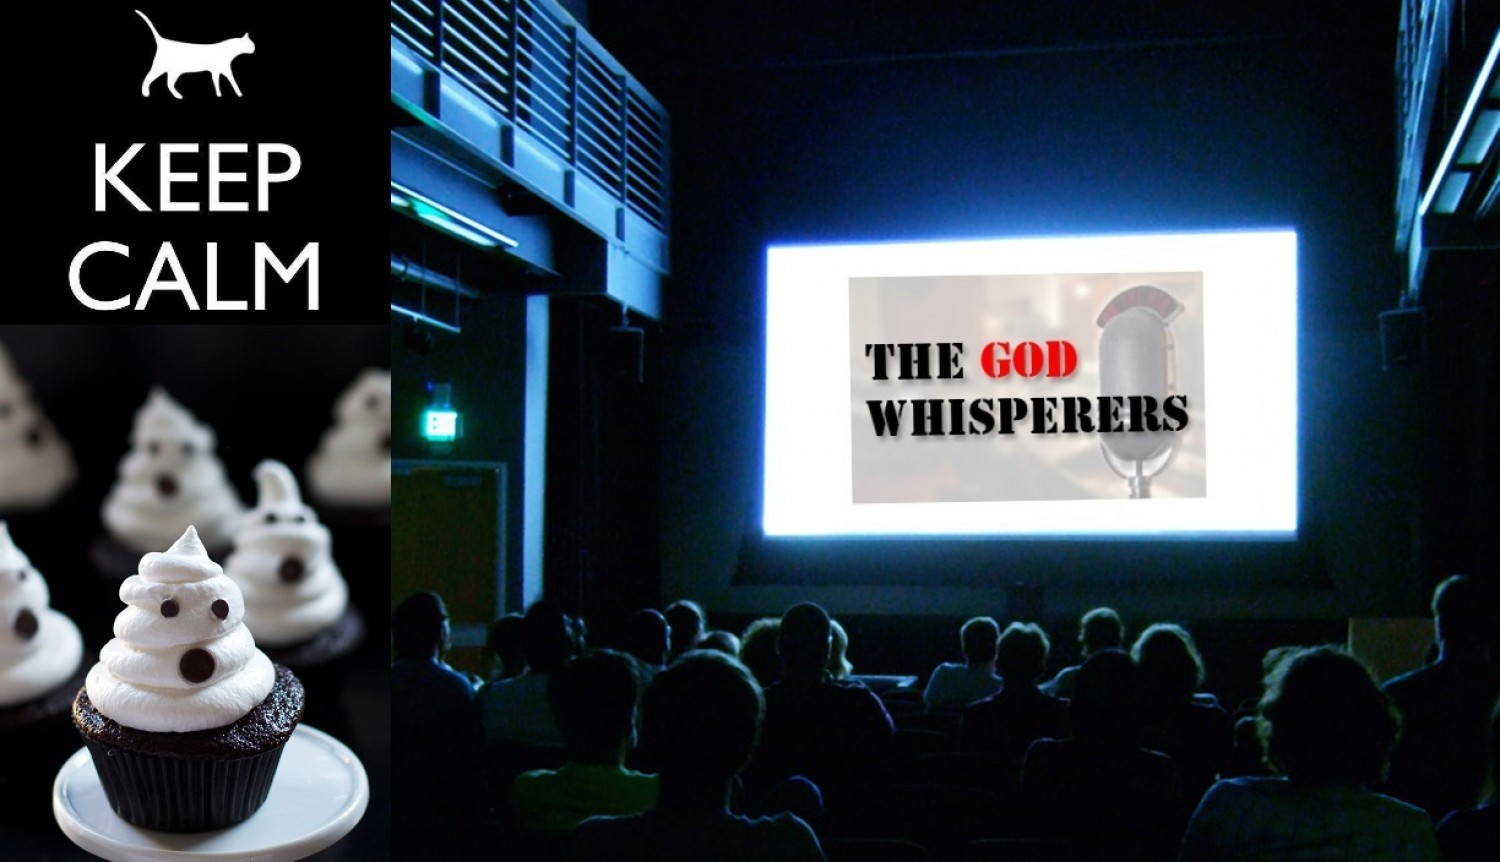 Pr. Ted Giese on The God Whisperers with Donofrio & Cwirla - Spooky Edition